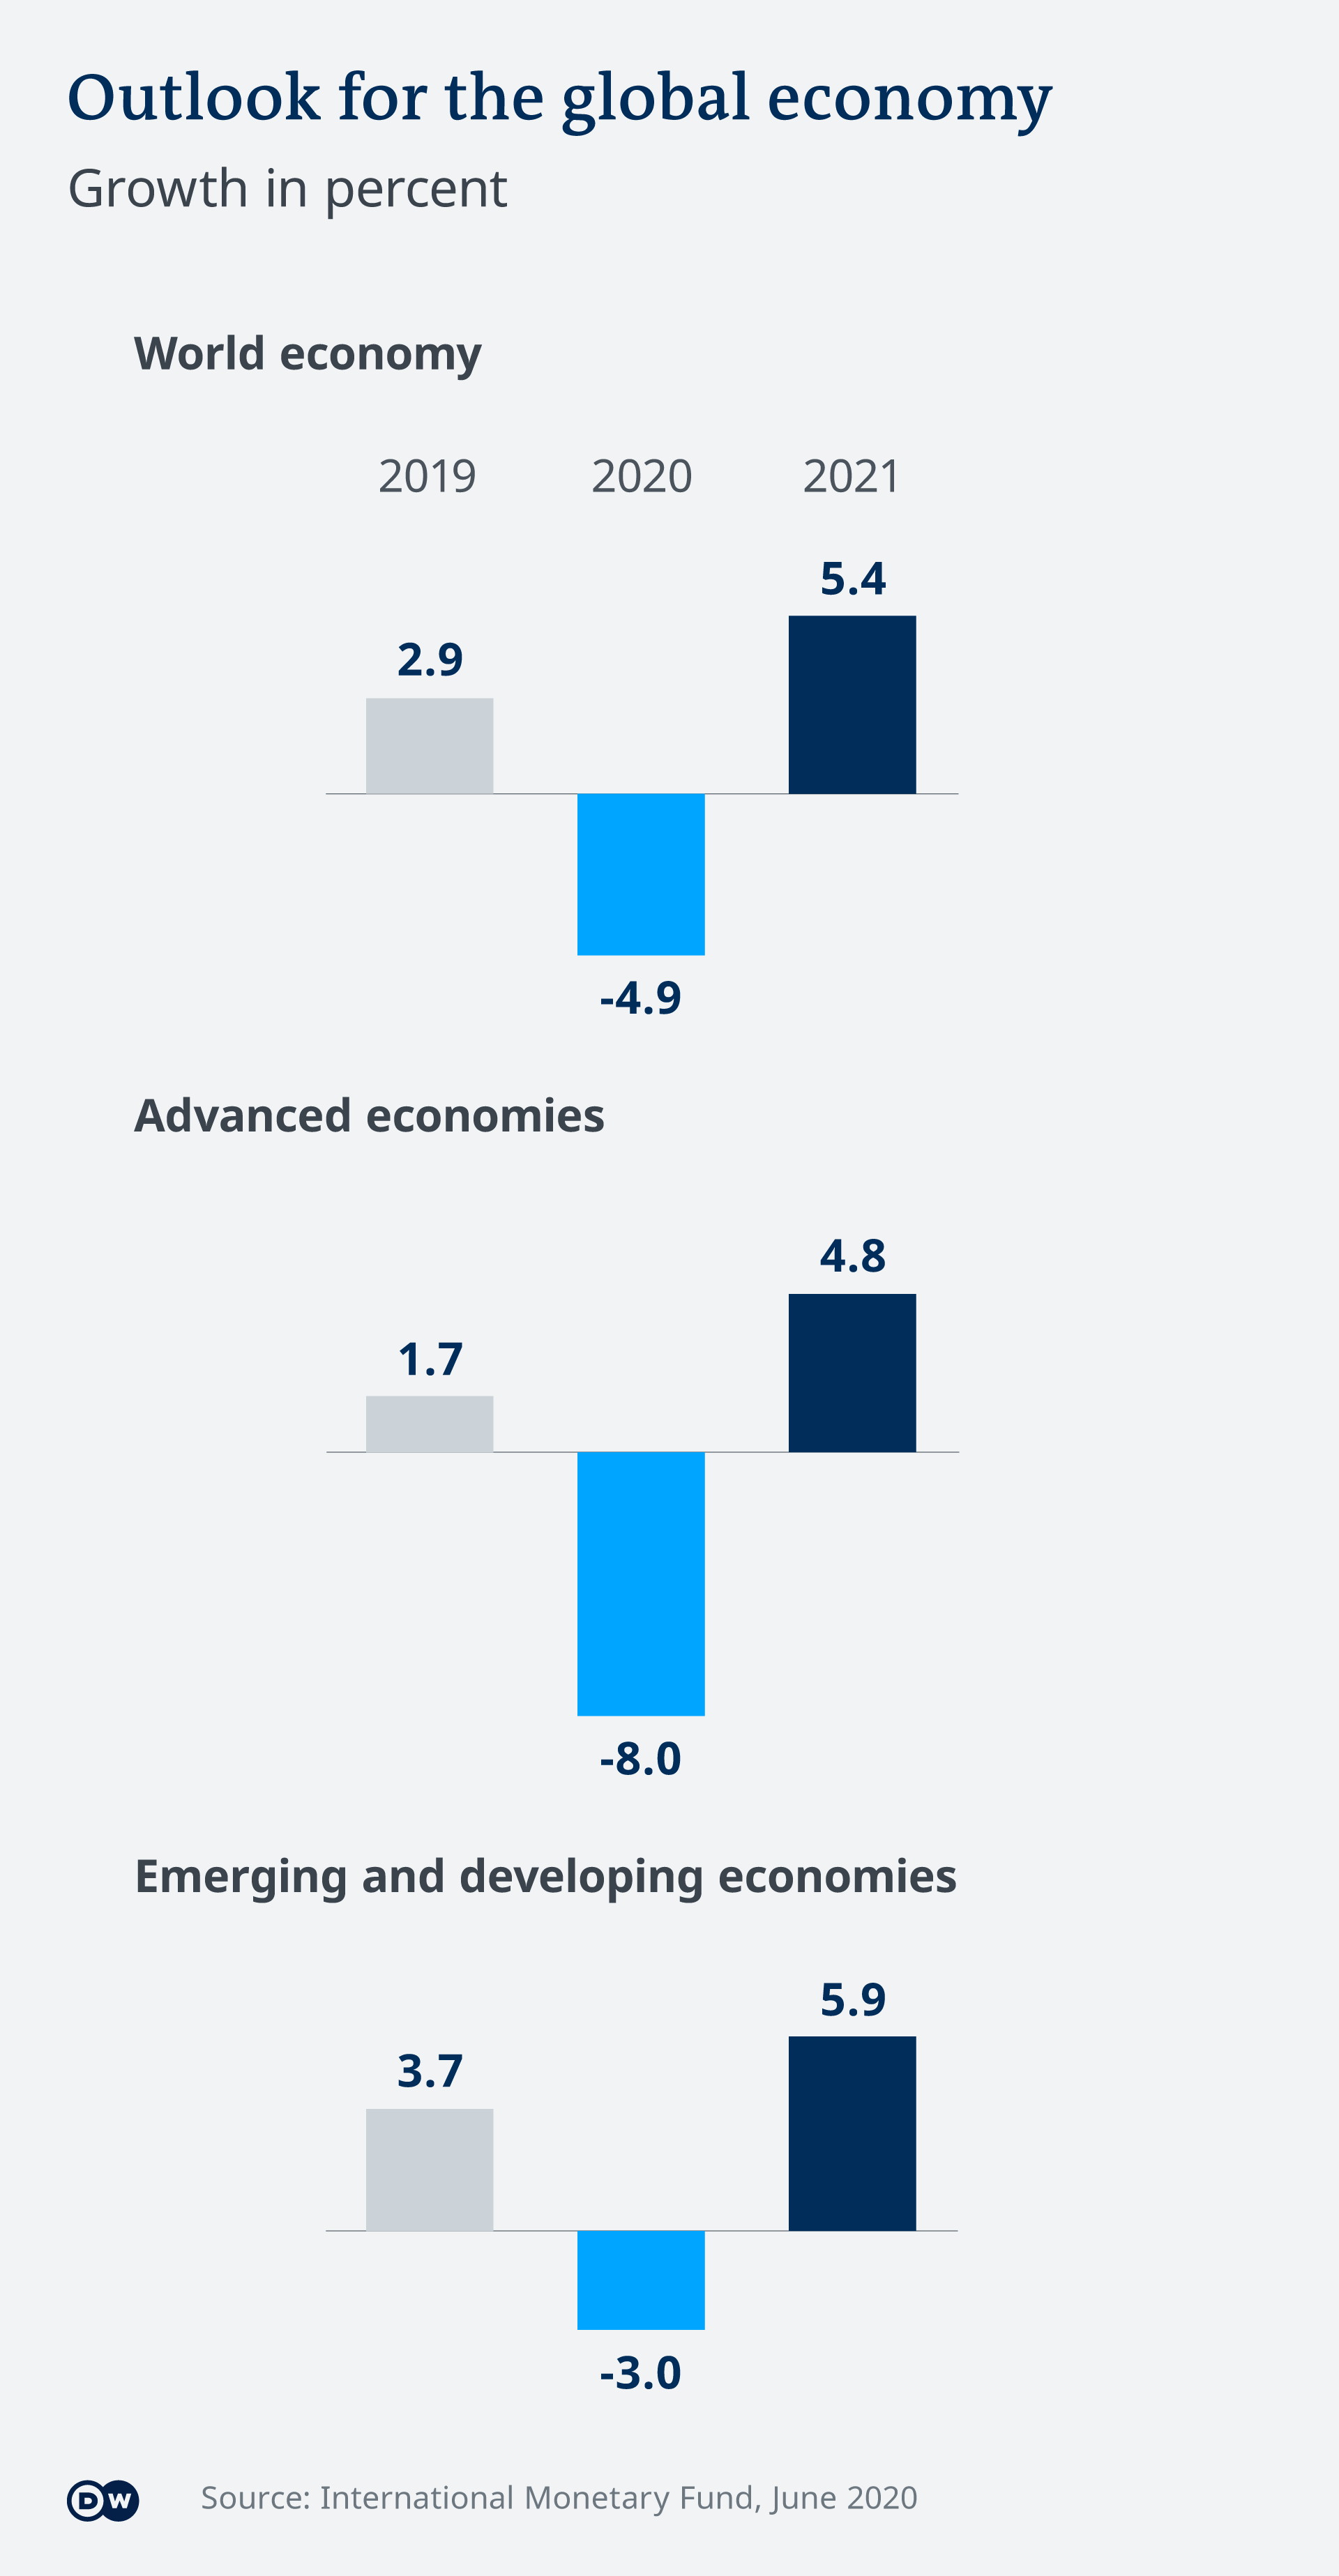 Global economic growth - predictions